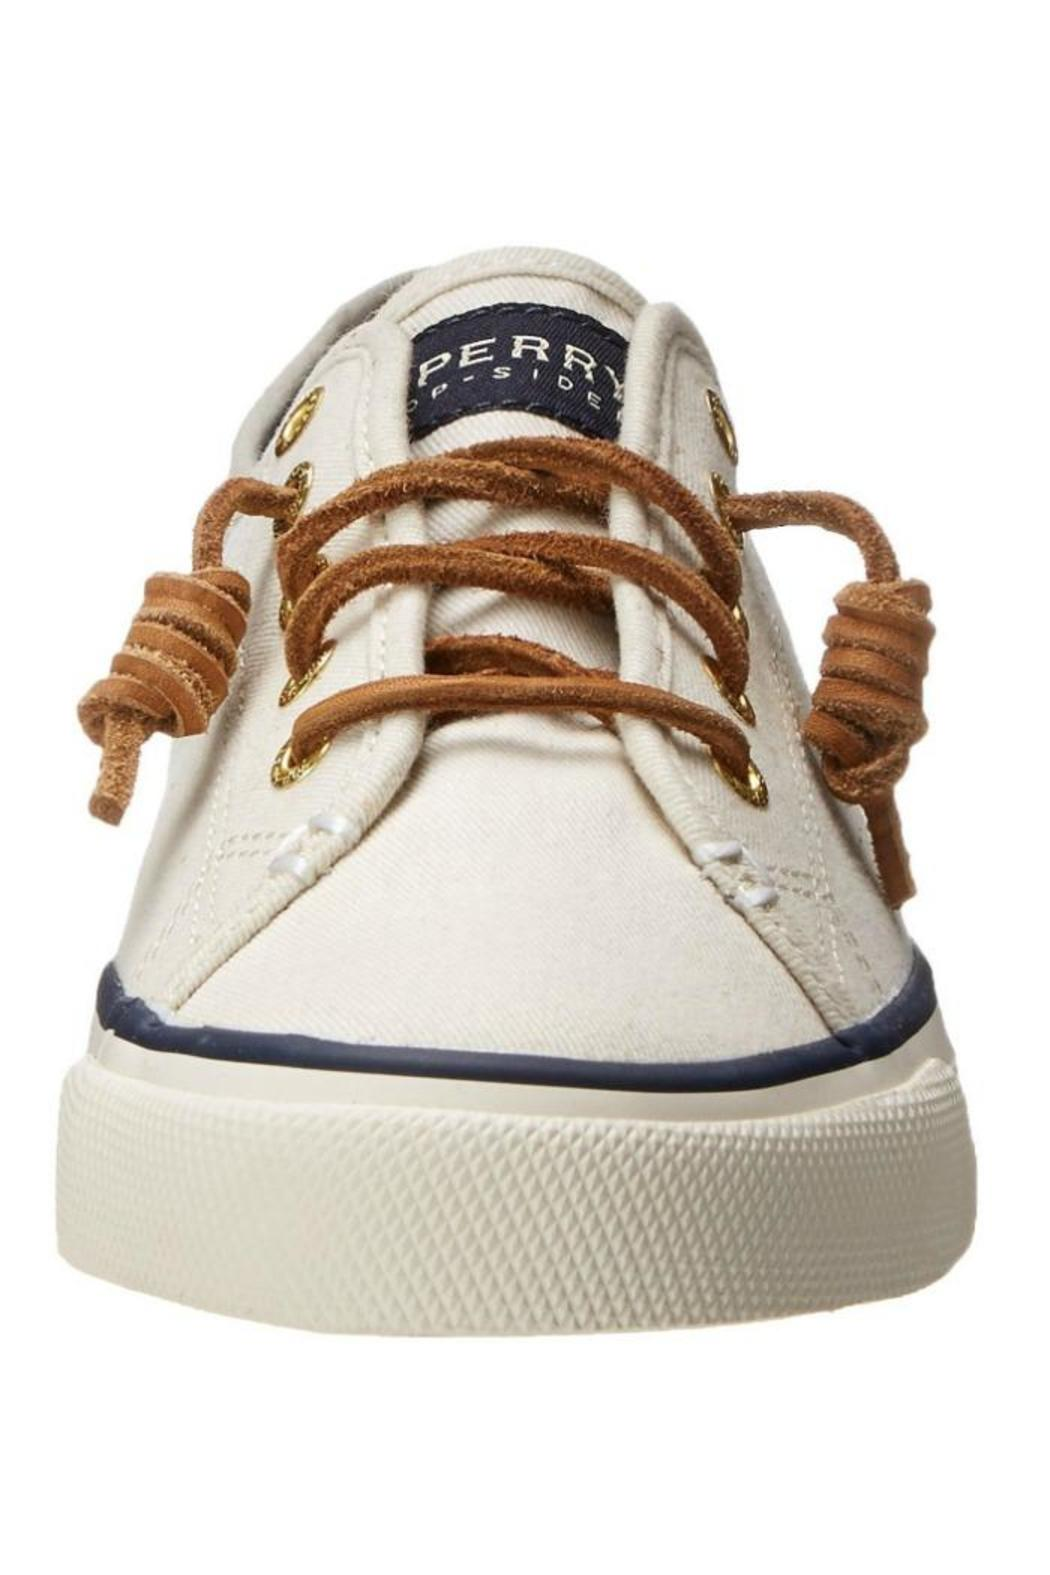 9e9970e7959003 Sperry Top-Sider Seacoast Canvas Sneaker from Cleveland by Szabo ... sperry  top